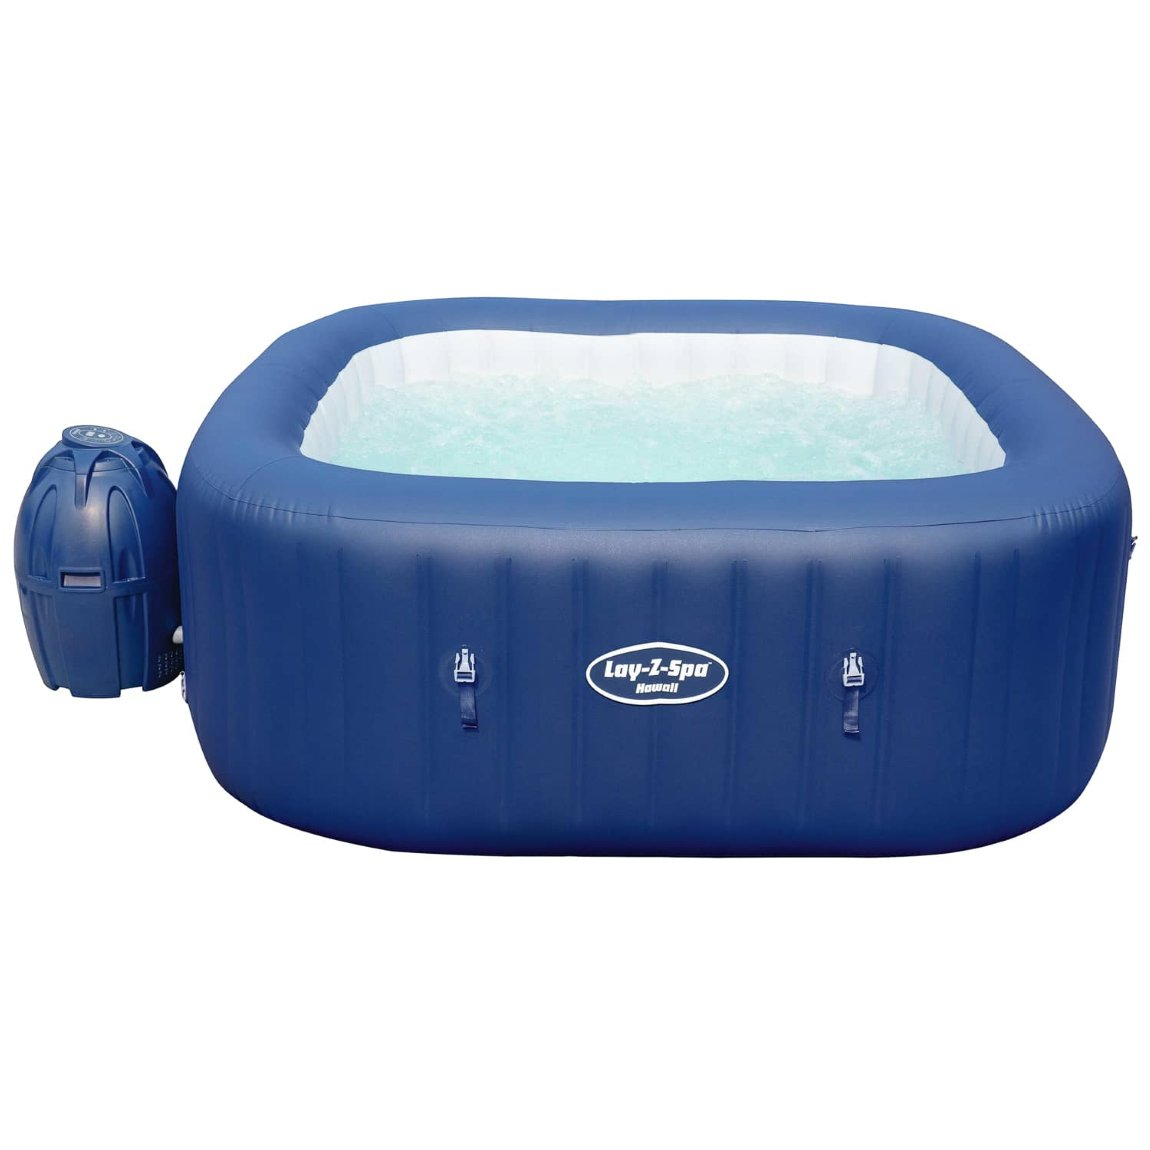 Lay-Z-Spa Hawaii AirJet Hot Tub